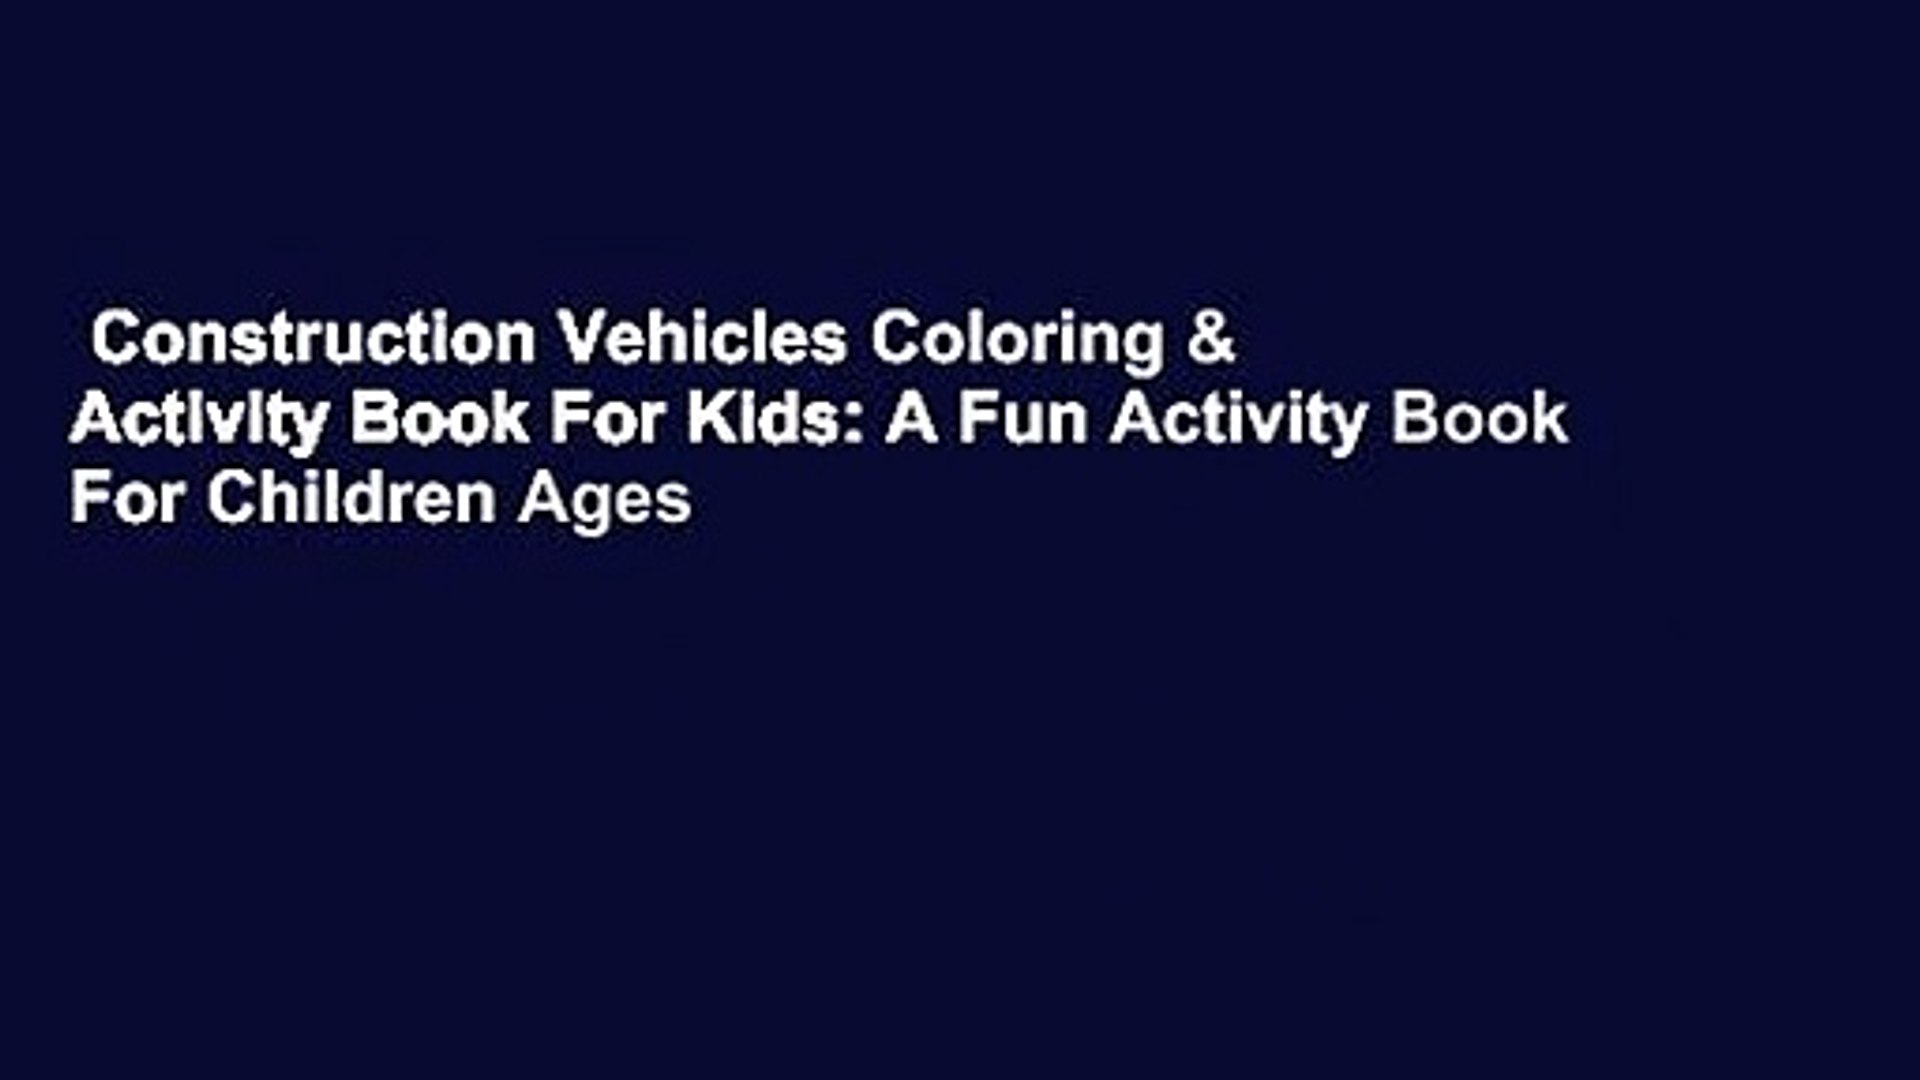 Construction Vehicles Coloring & Activity Book For Kids: A Fun Activity Book For Children Ages